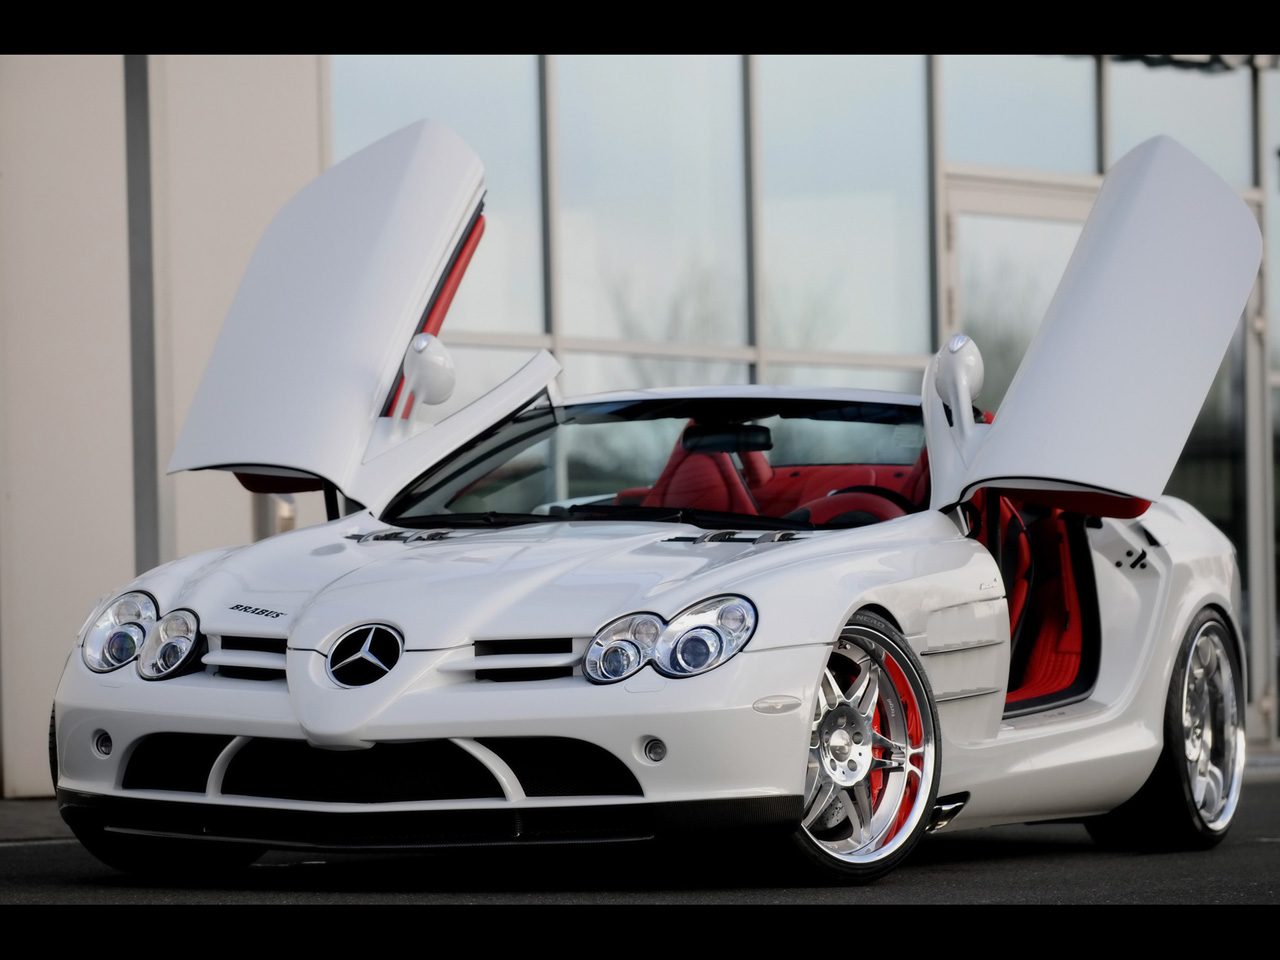 Mercedez Benz SLK McLaren Roadster Top 10 Most Expensive Cars In 2011   2012